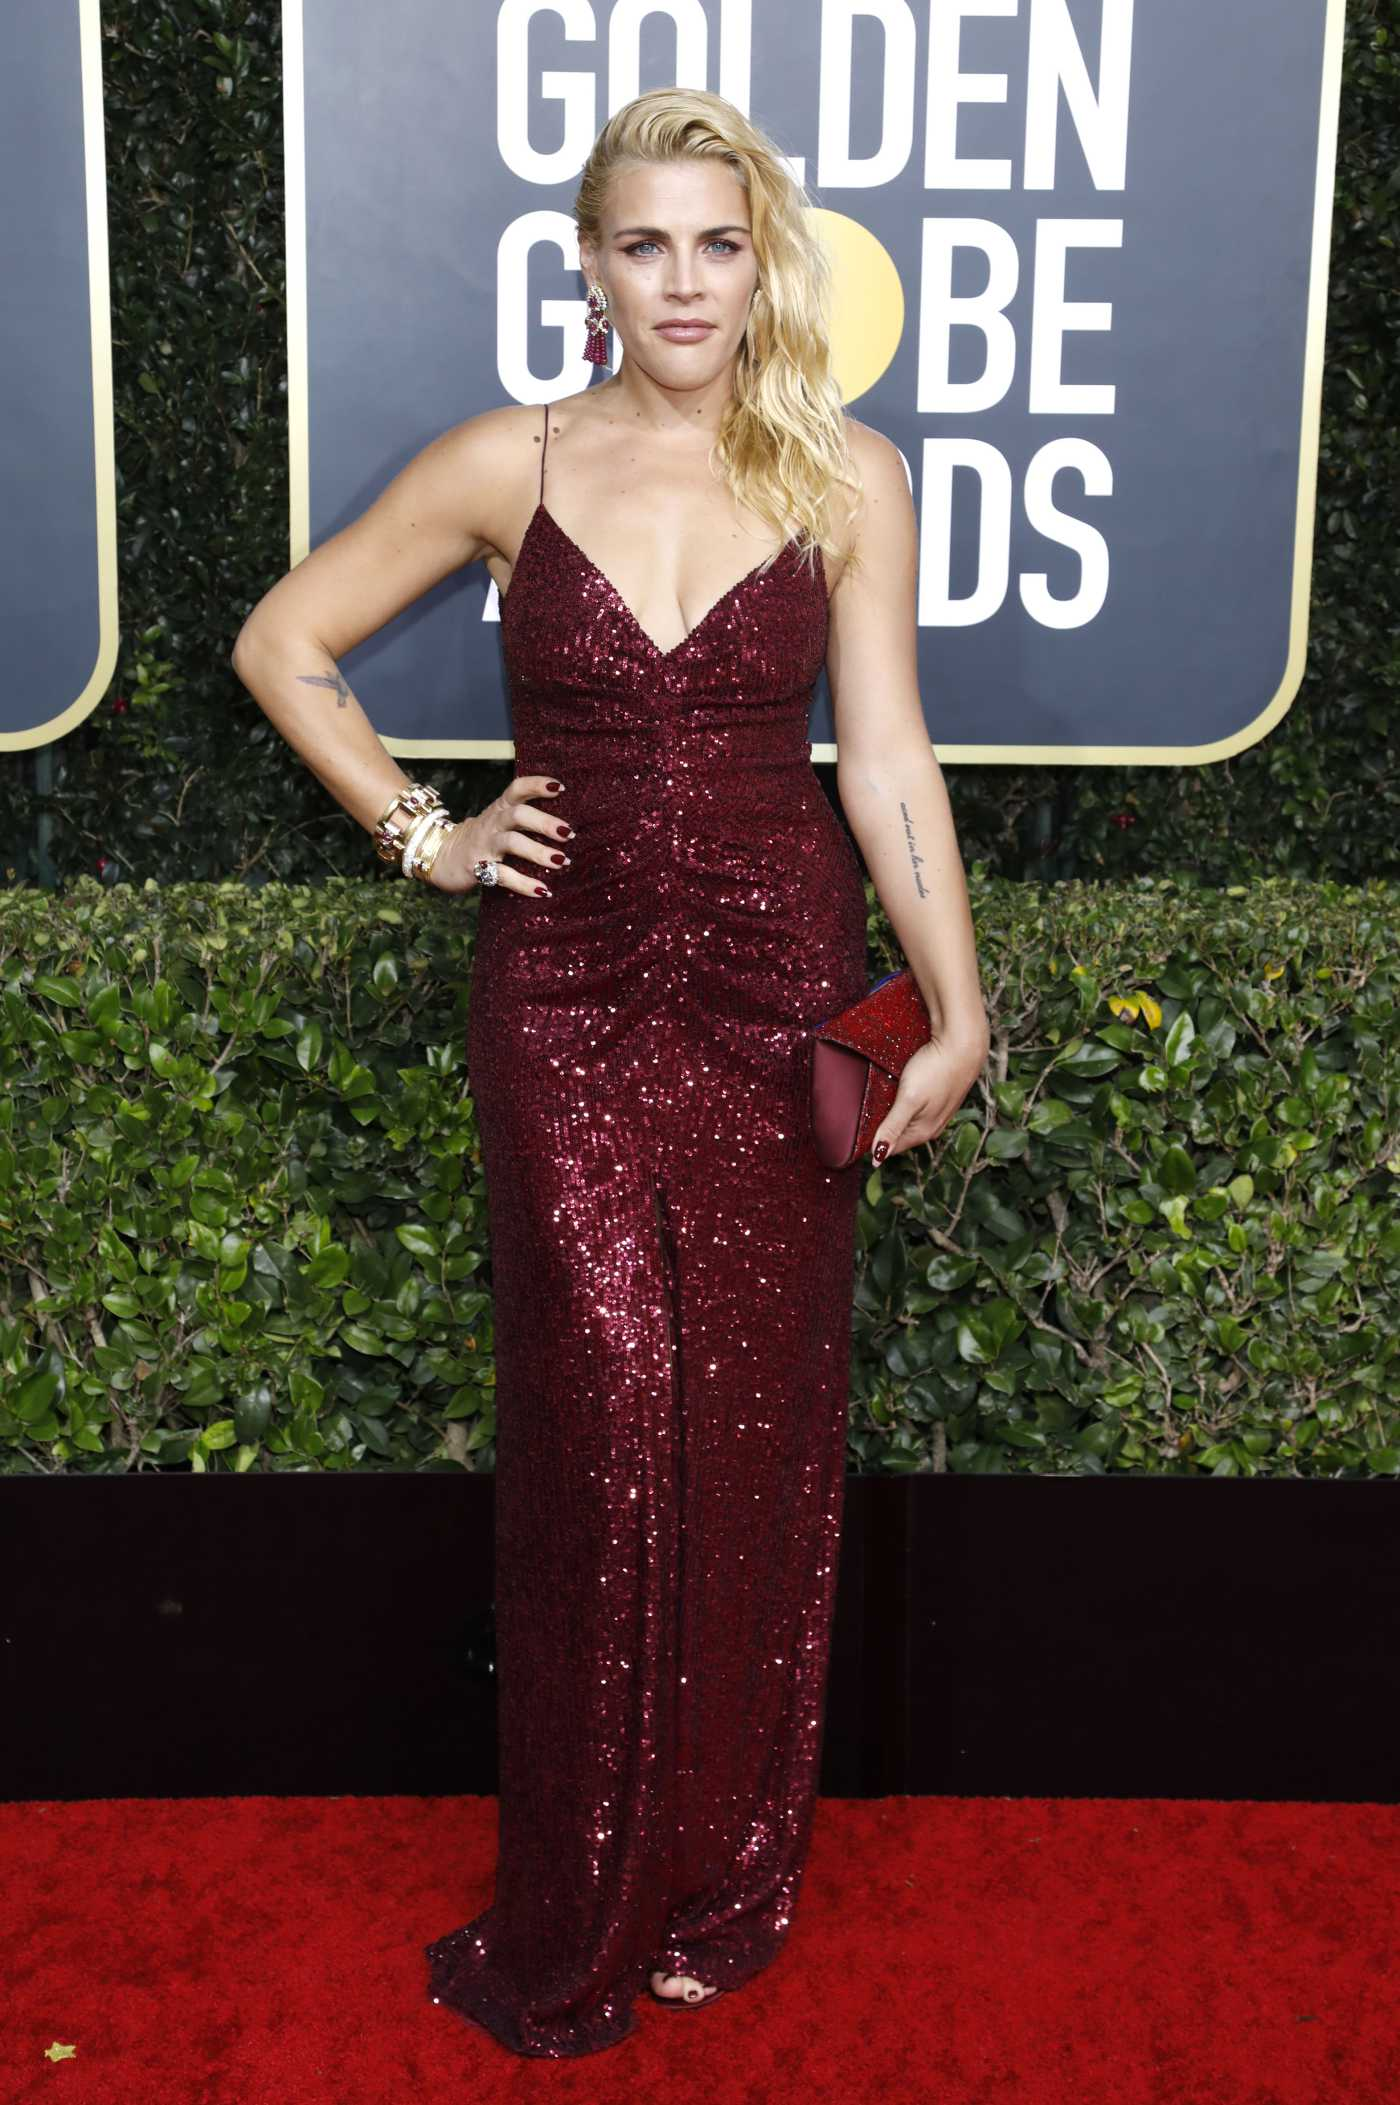 Busy Philipps Attends the 77th Annual Golden Globe Awards at the Beverly Hilton Hotel in Beverly Hills 01/05/2020